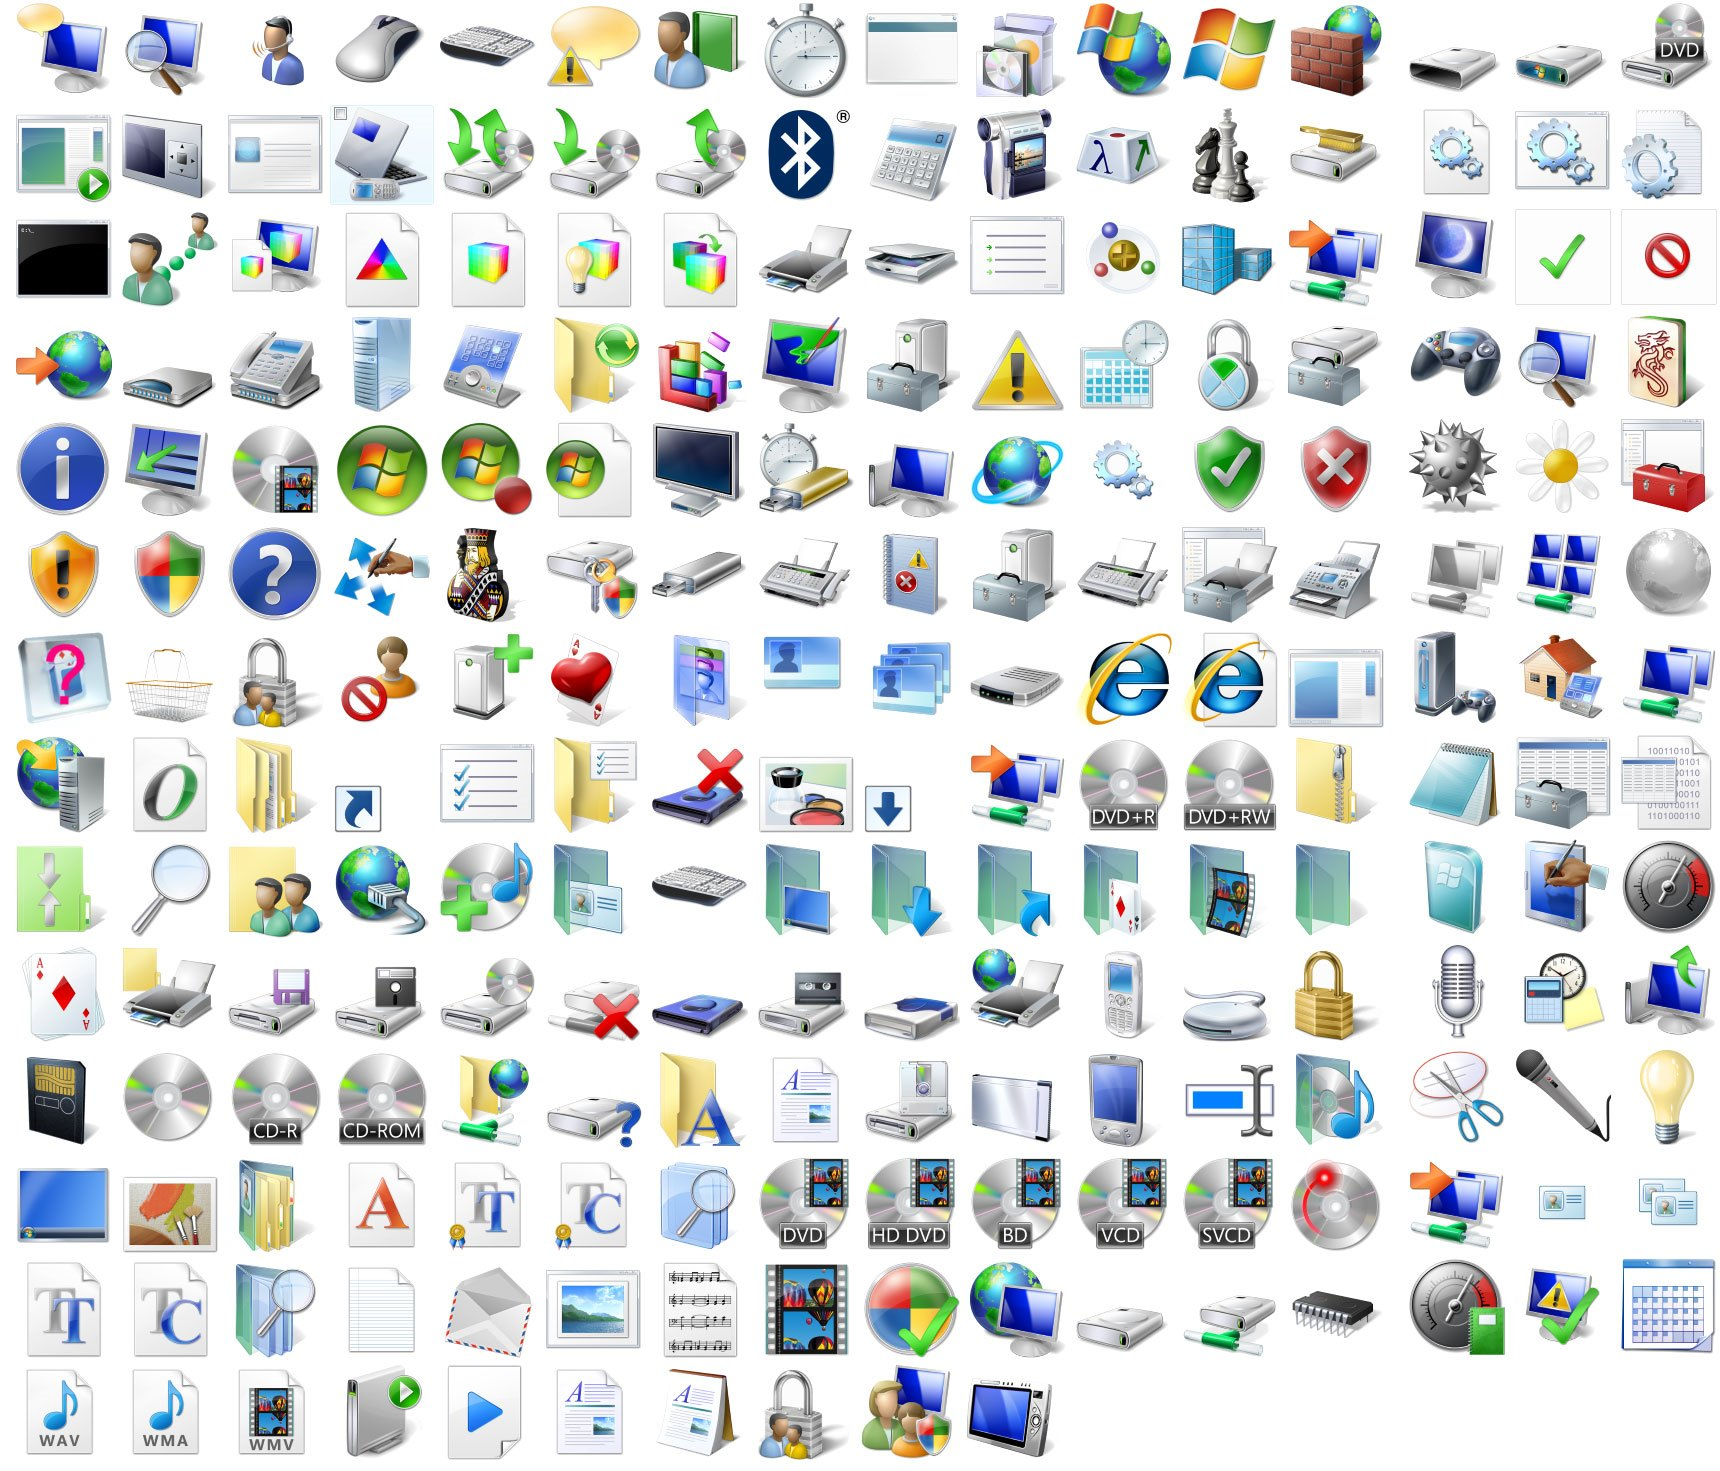 Hot PC Tips - sample icons